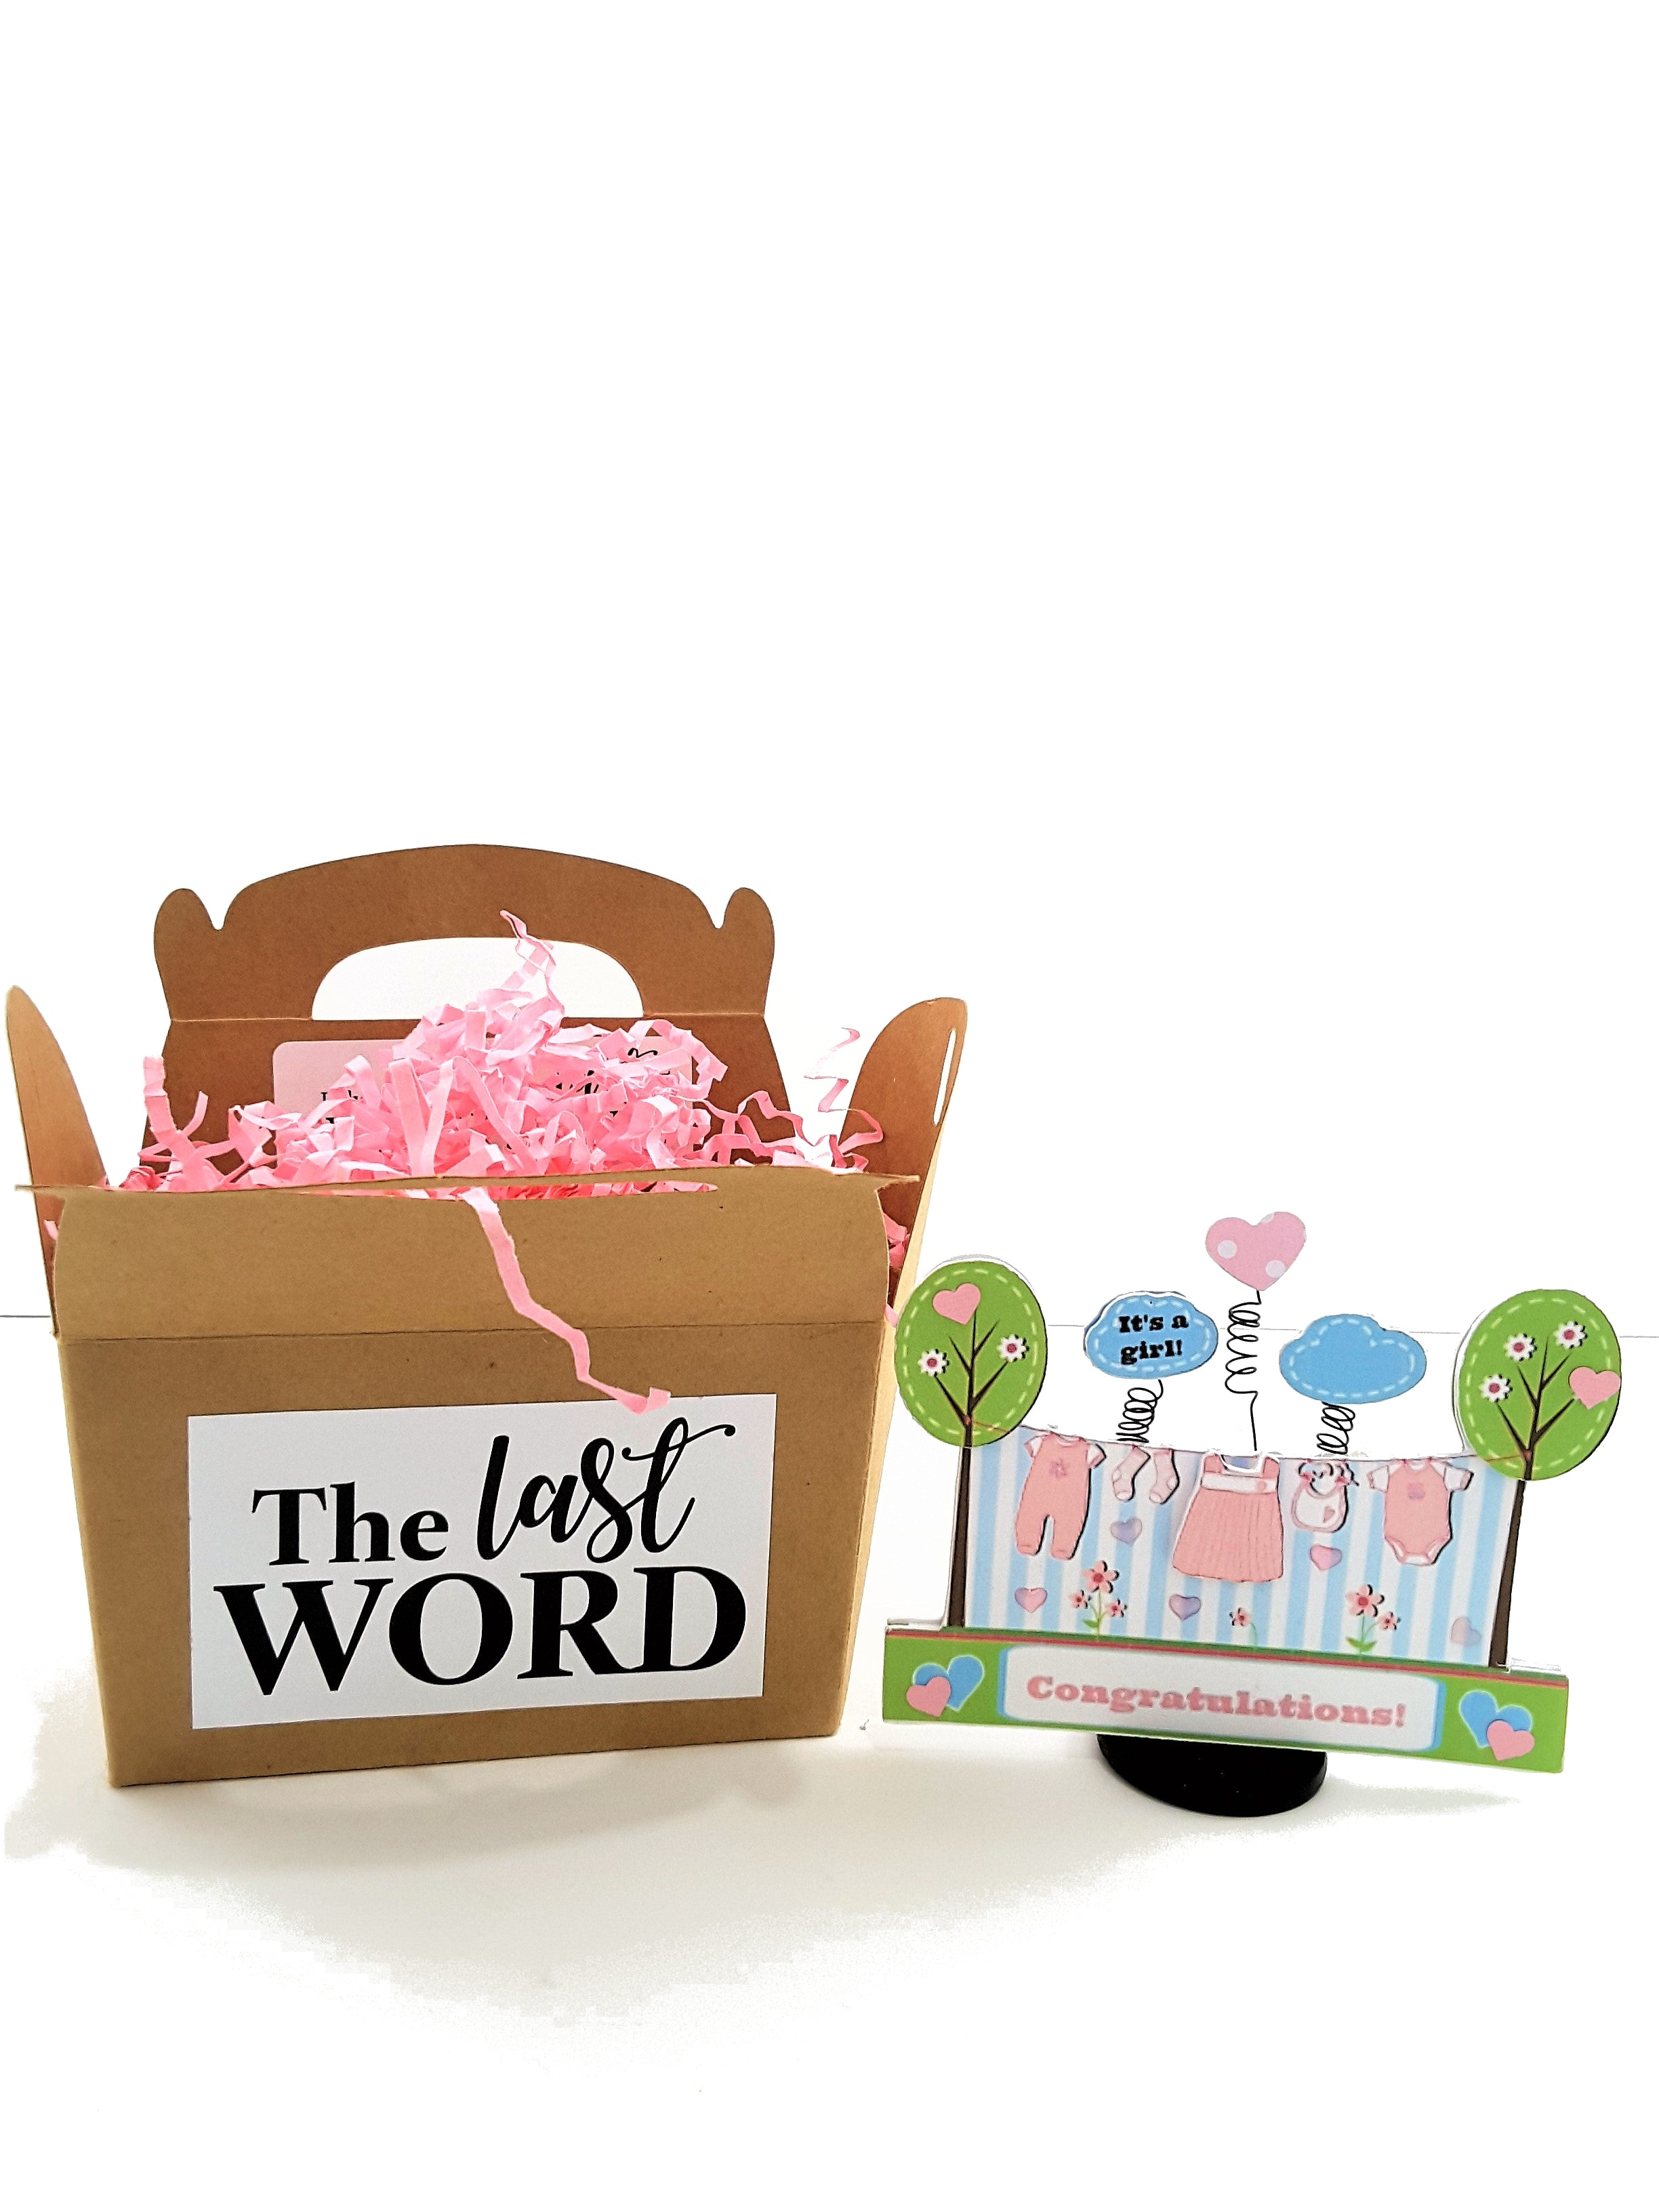 It's a Girl Personalized 3D Baby Congratulations Card - TheLastWordBish.com